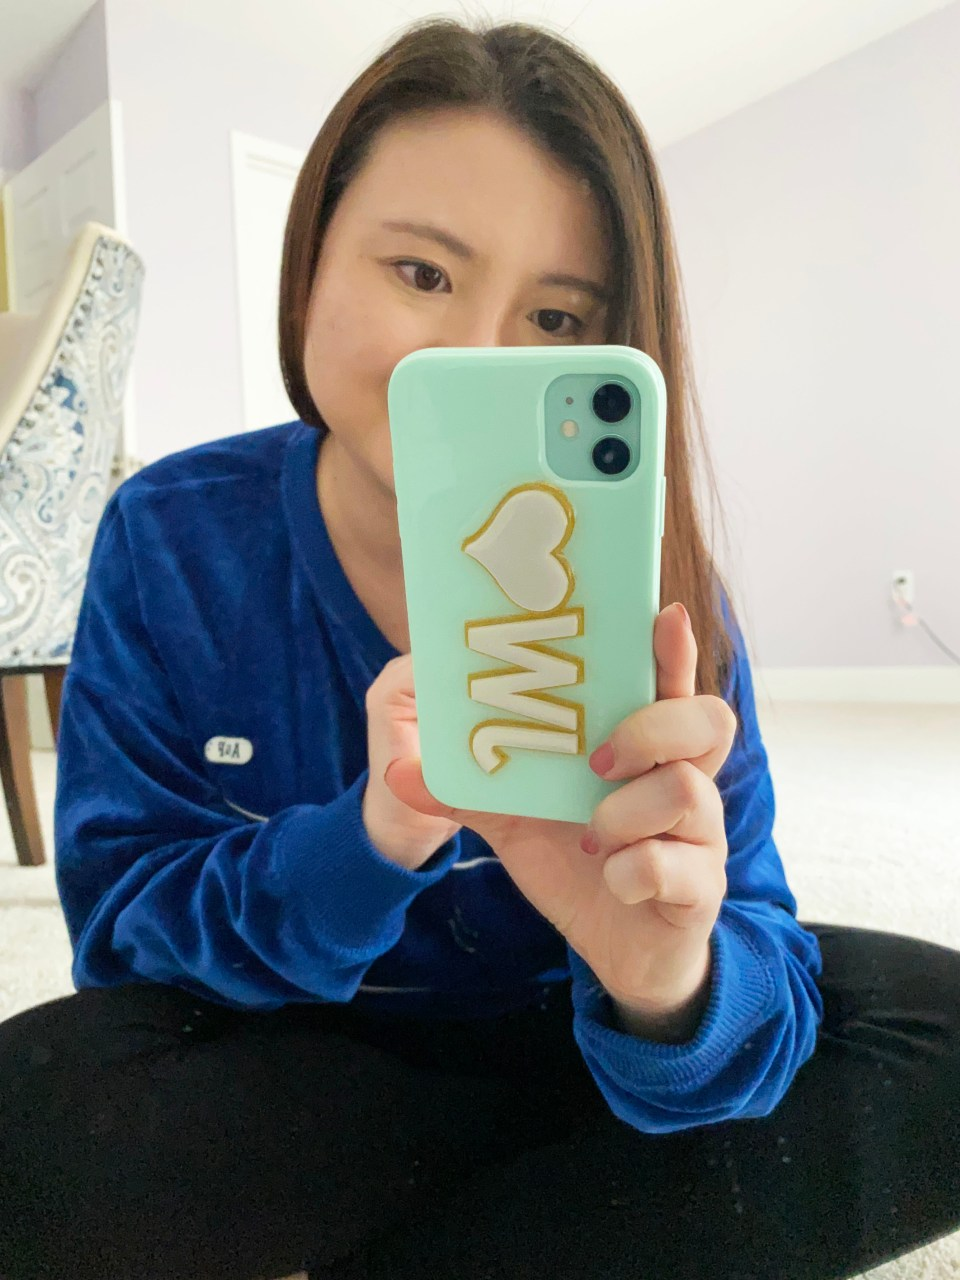 Baublebar x OMC Personalized Phone Case 3